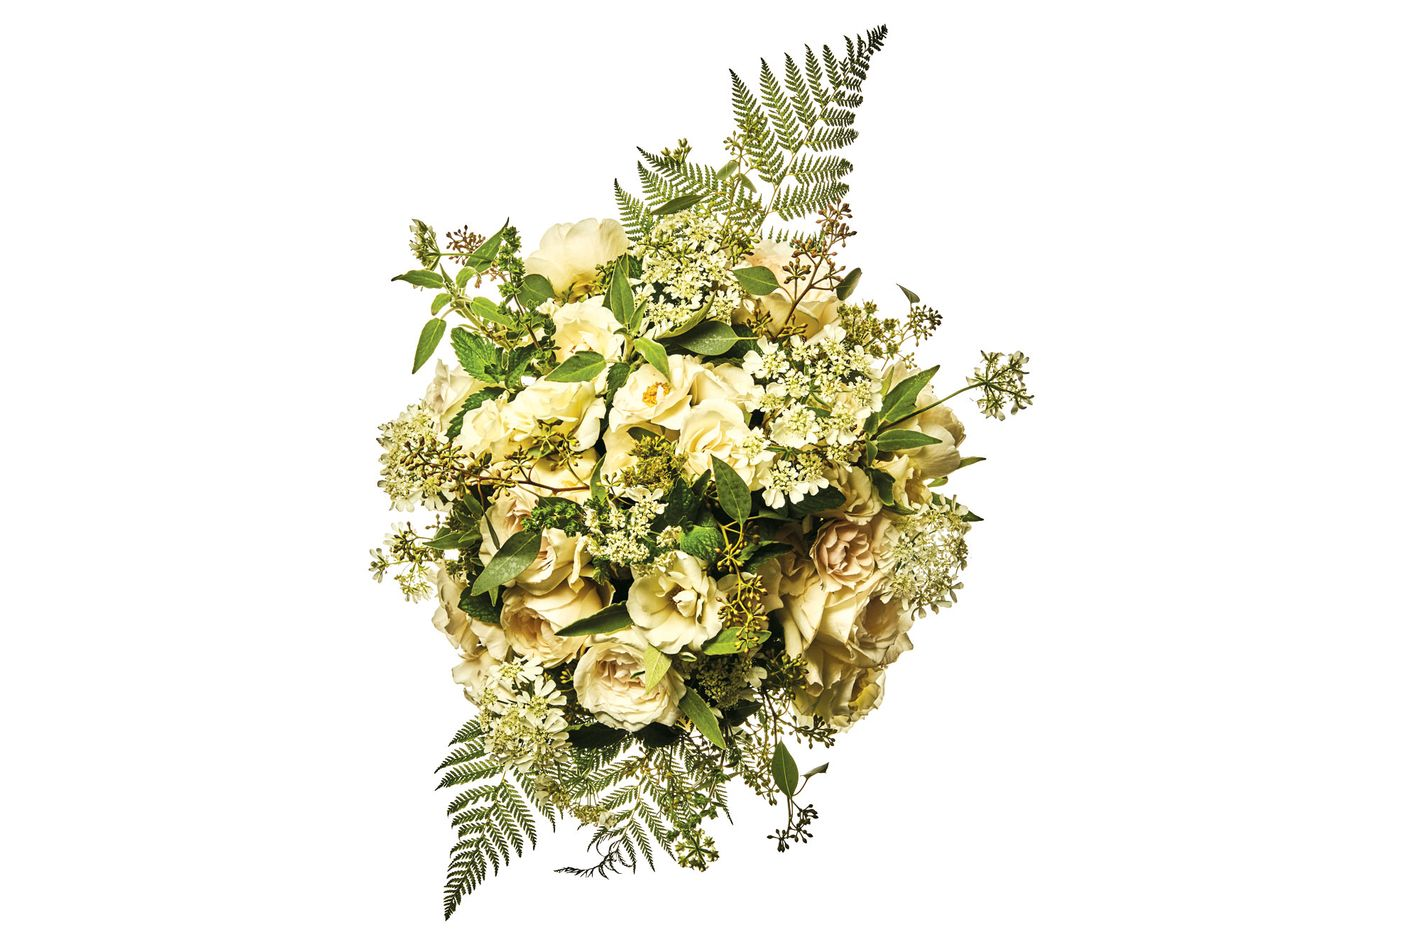 Majolica spray rose, Lichfield Angel garden rose, local Queen Anne's lace, flowering oregano, sage, mint, and forest fern